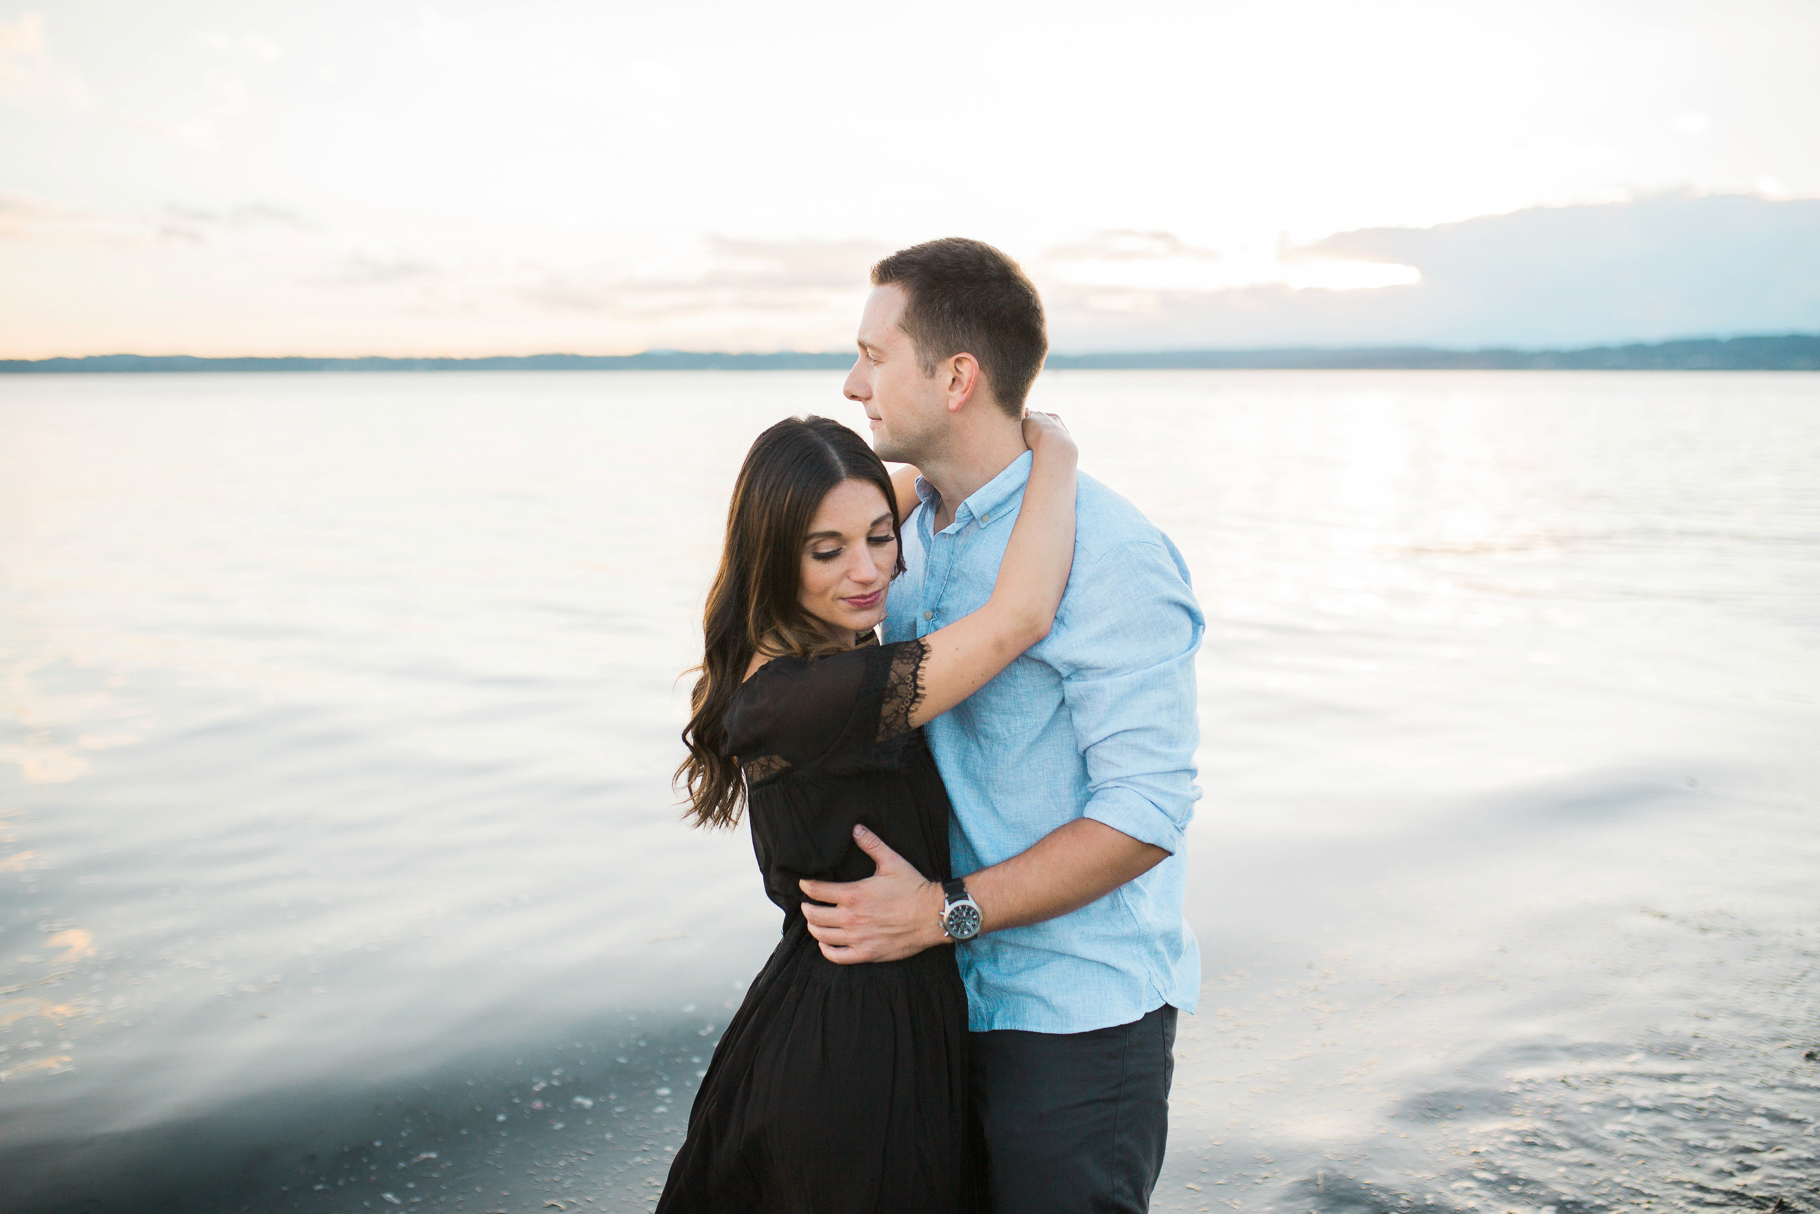 Discovery-Park-Seattle-Engagment-Photographer-Wedding-Photography-by-Betty-Elaine_0013